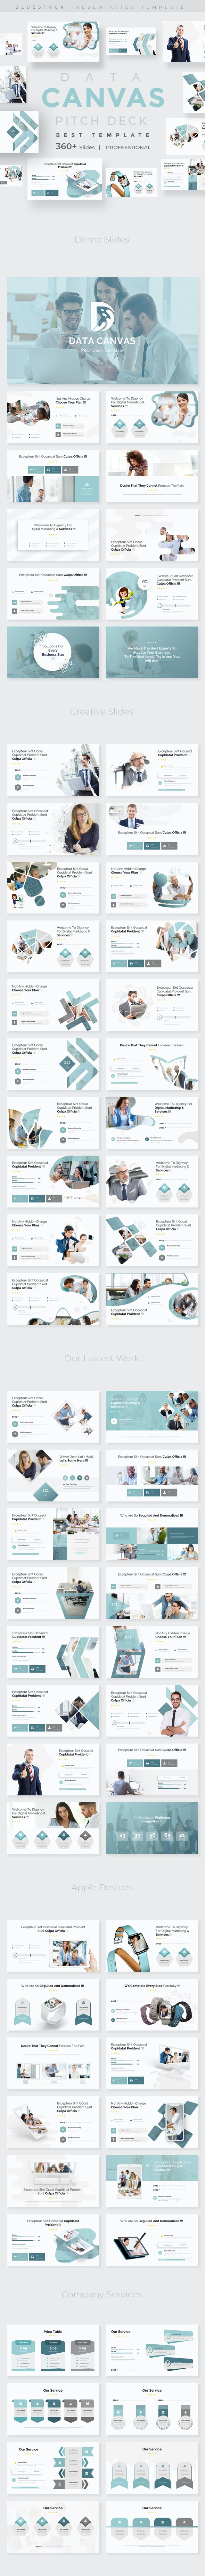 Data Canvas Pitch Deck Powerpoint Template - Business PowerPoint Templates